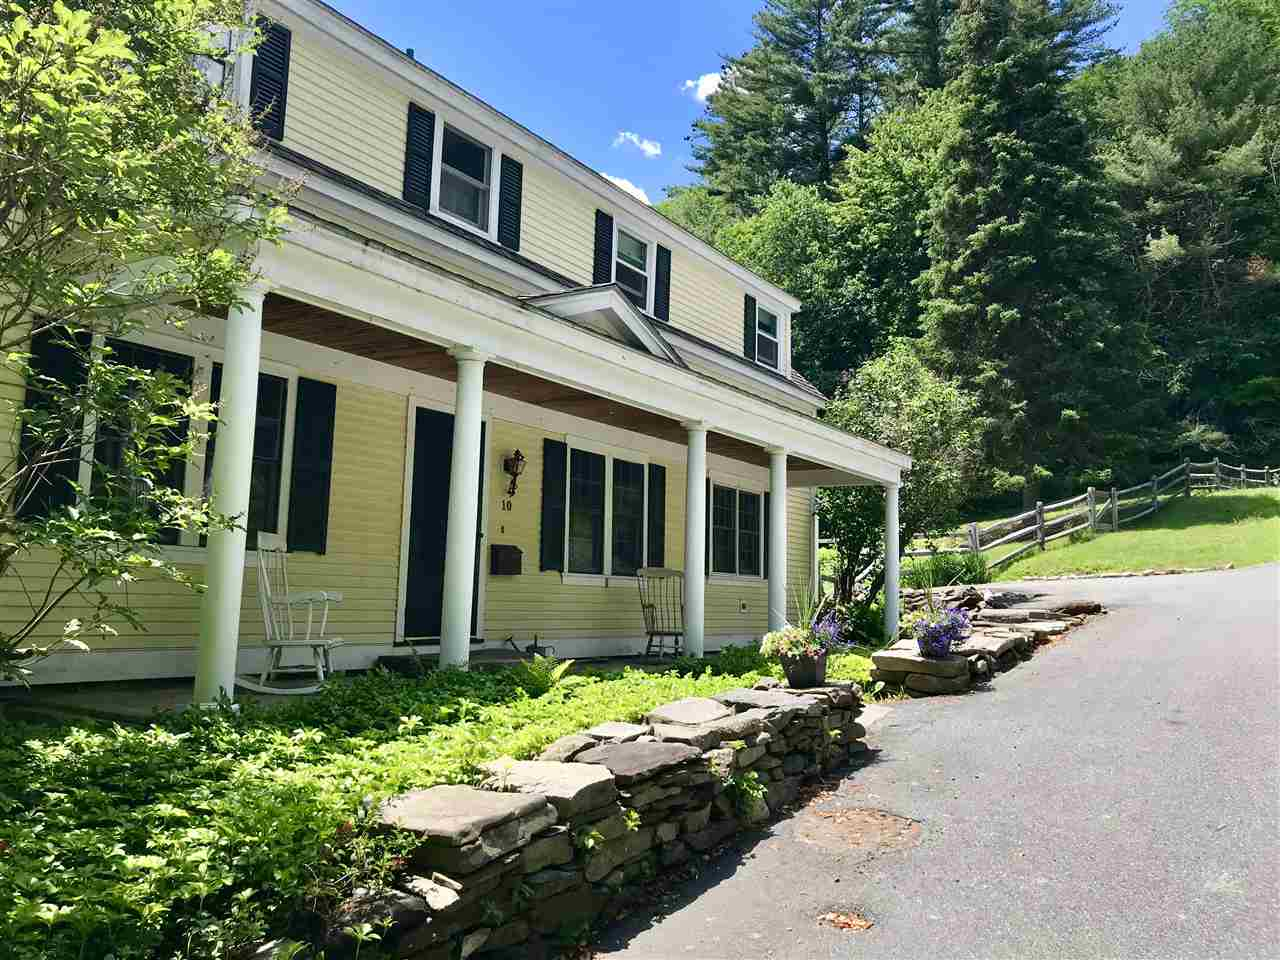 MLS 4685781: 10 North Street, Woodstock VT